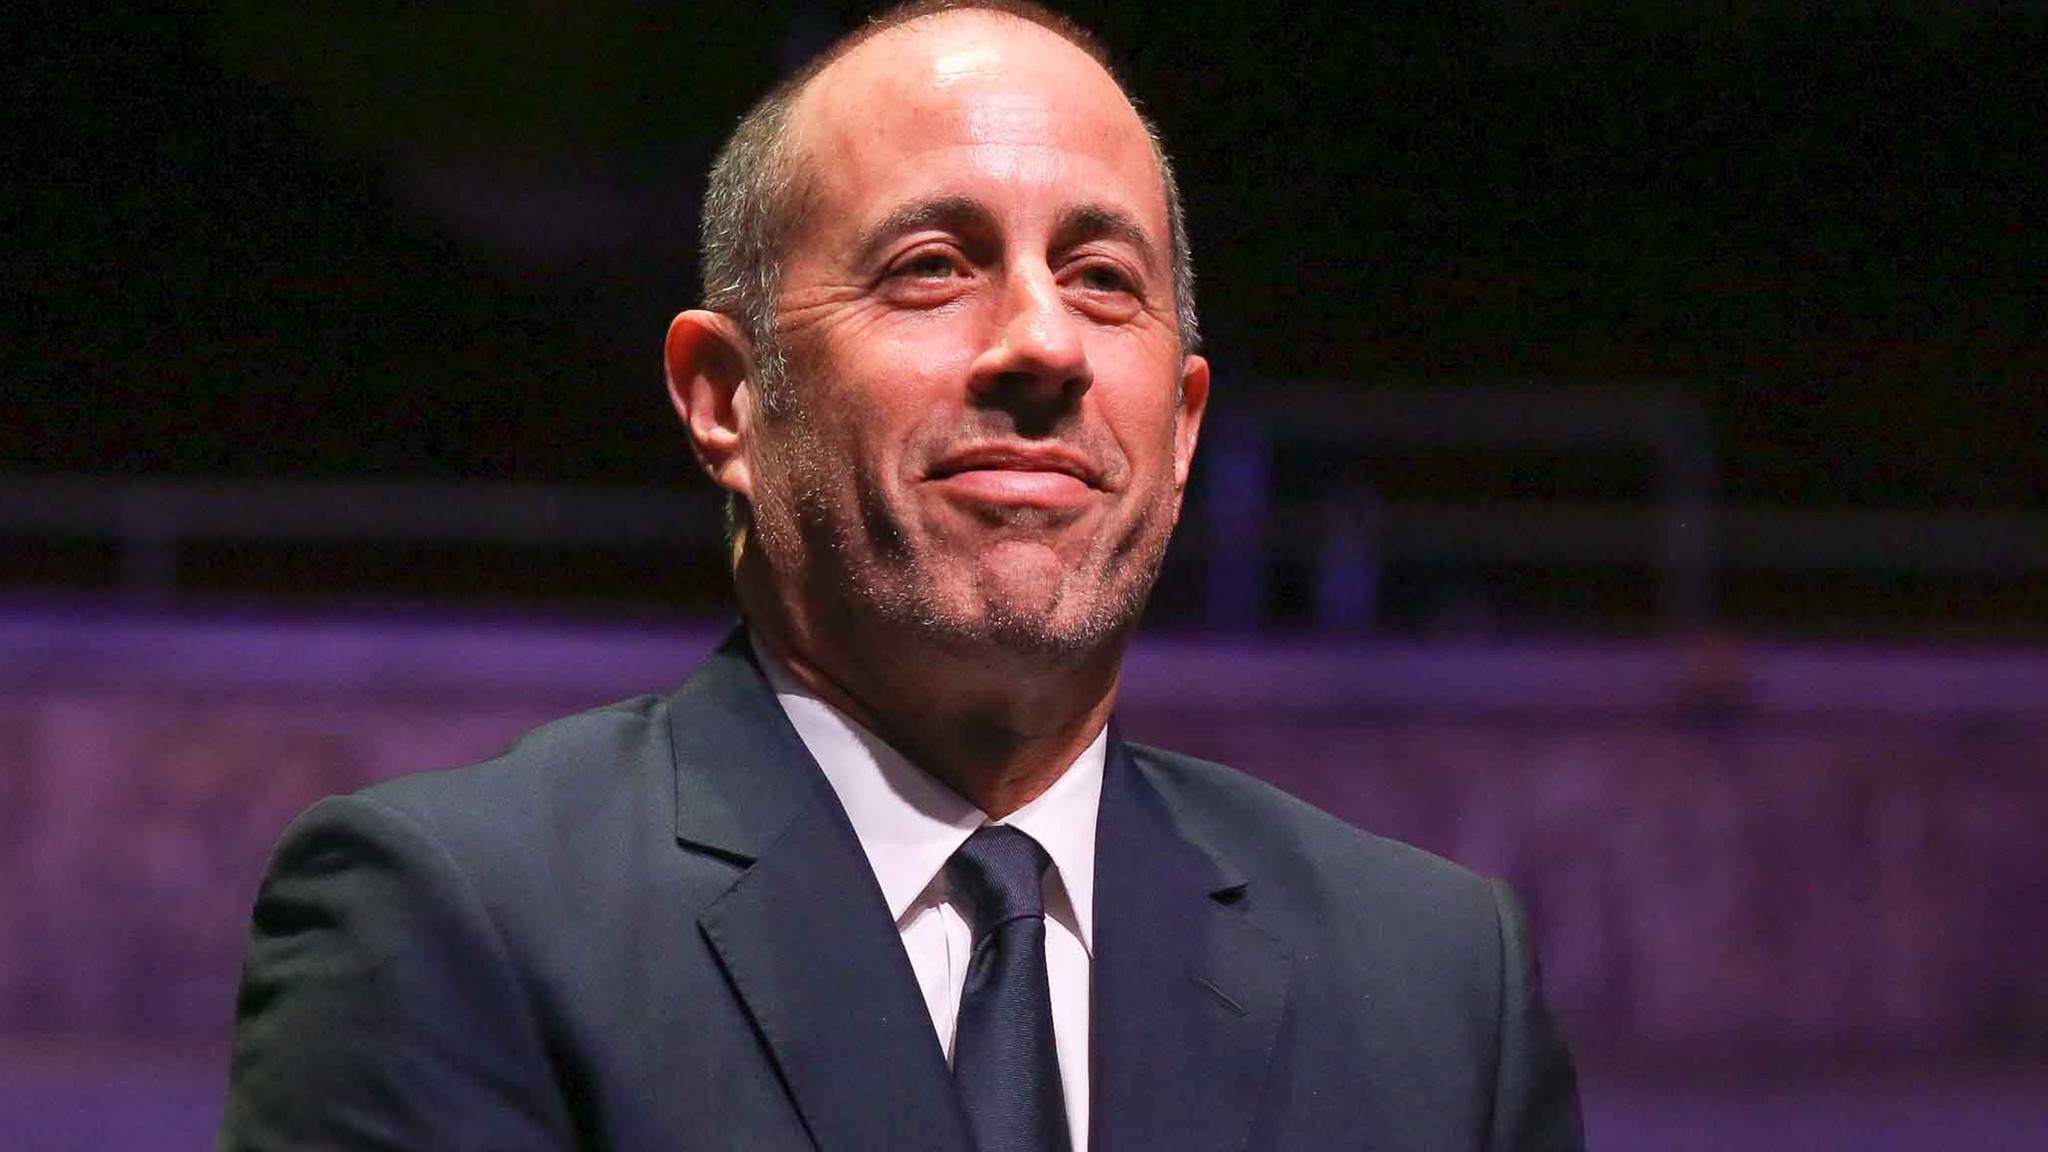 Jerry Seinfeld Sells 17 Cars For More Than 22 Million